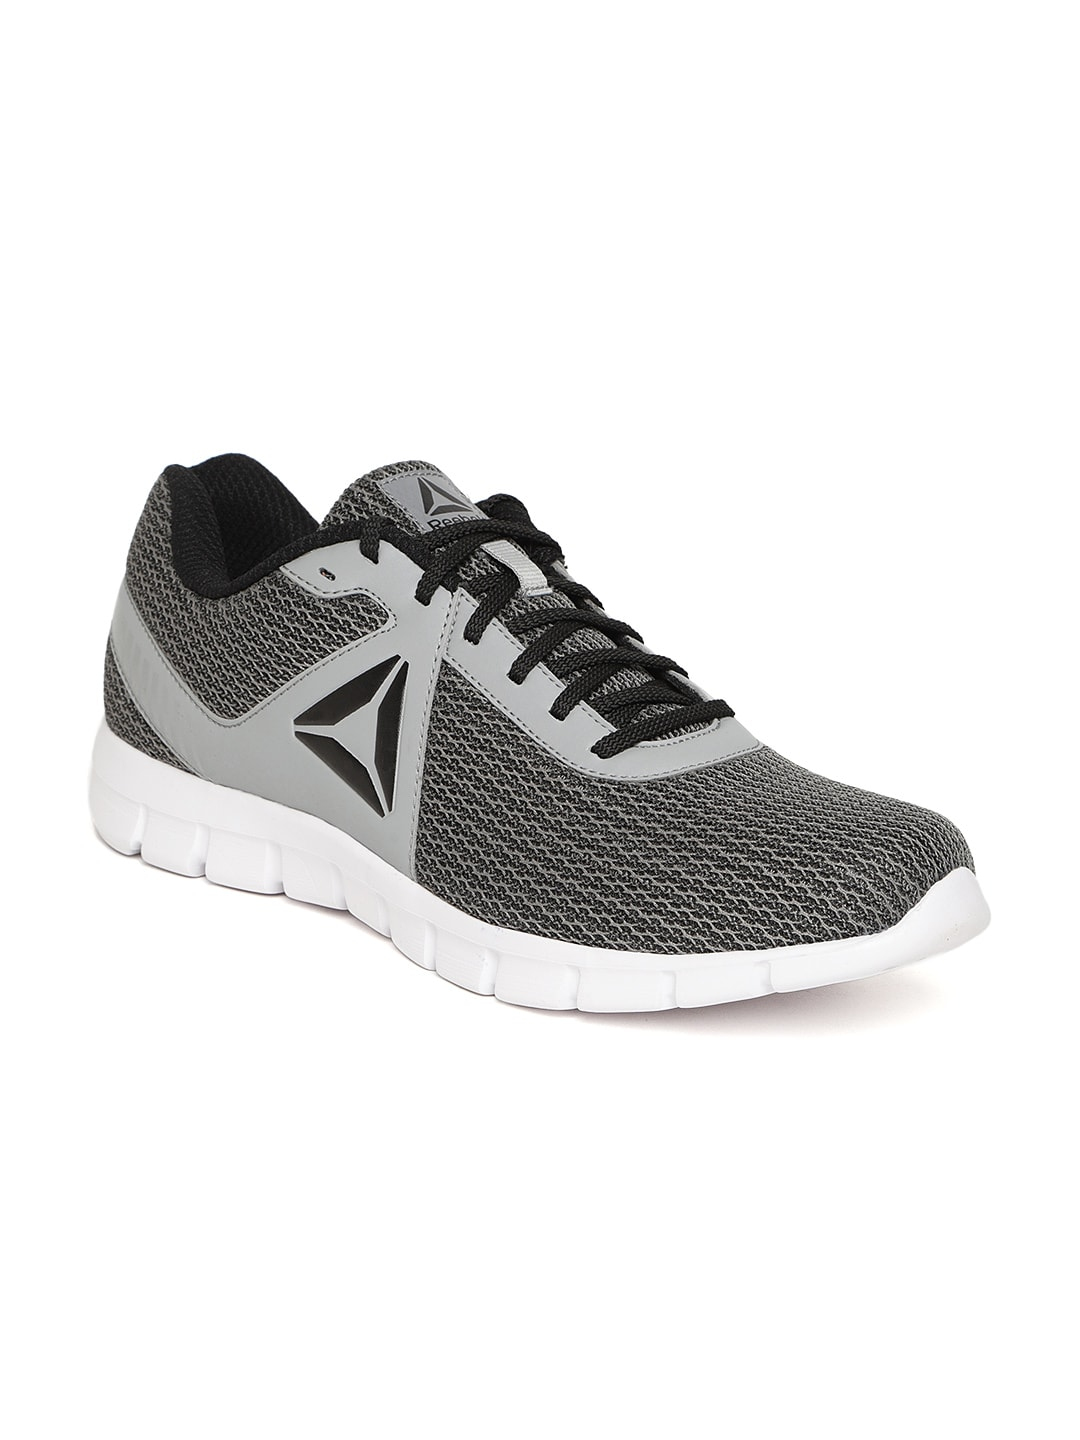 c75e2748735f Reebok - Buy Reebok Footwear   Apparel In India